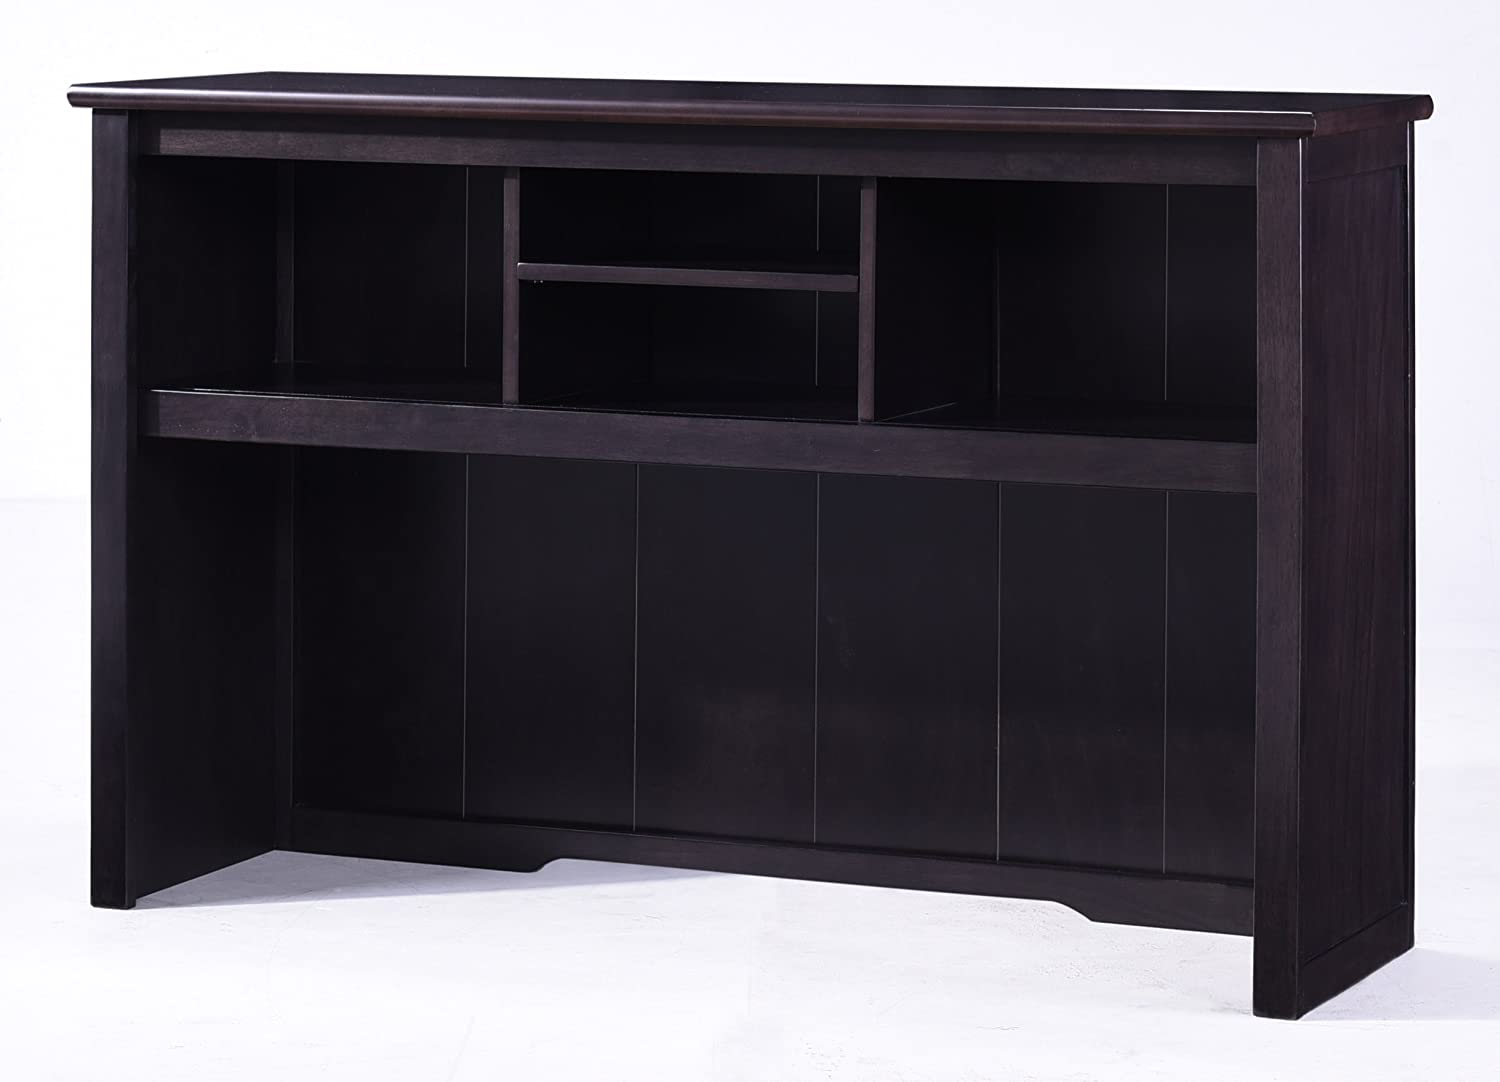 Better Homes and Gardens Sebring Hutch, Espresso 03411-41E